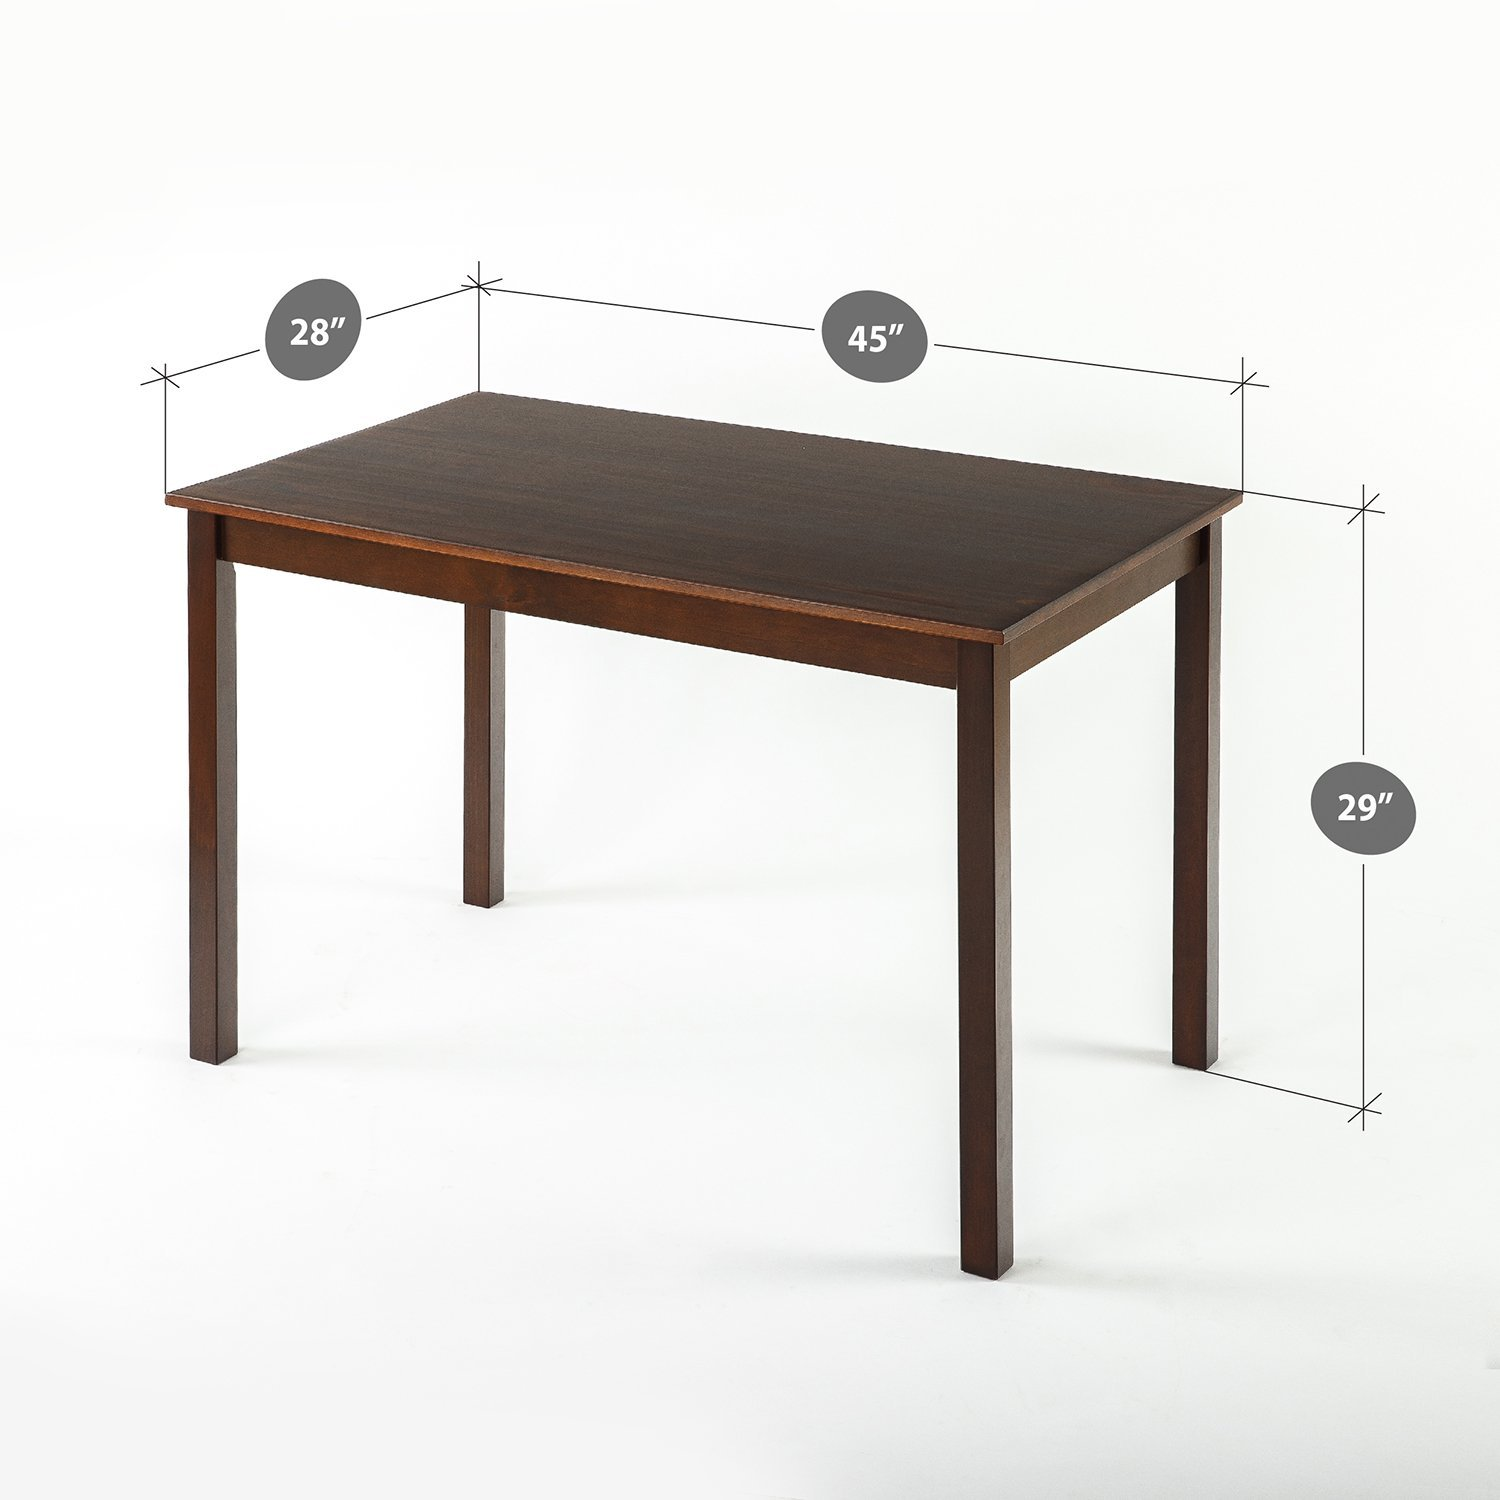 Zinus Espresso Wood Dining Table/Table Only by Zinus (Image #2)